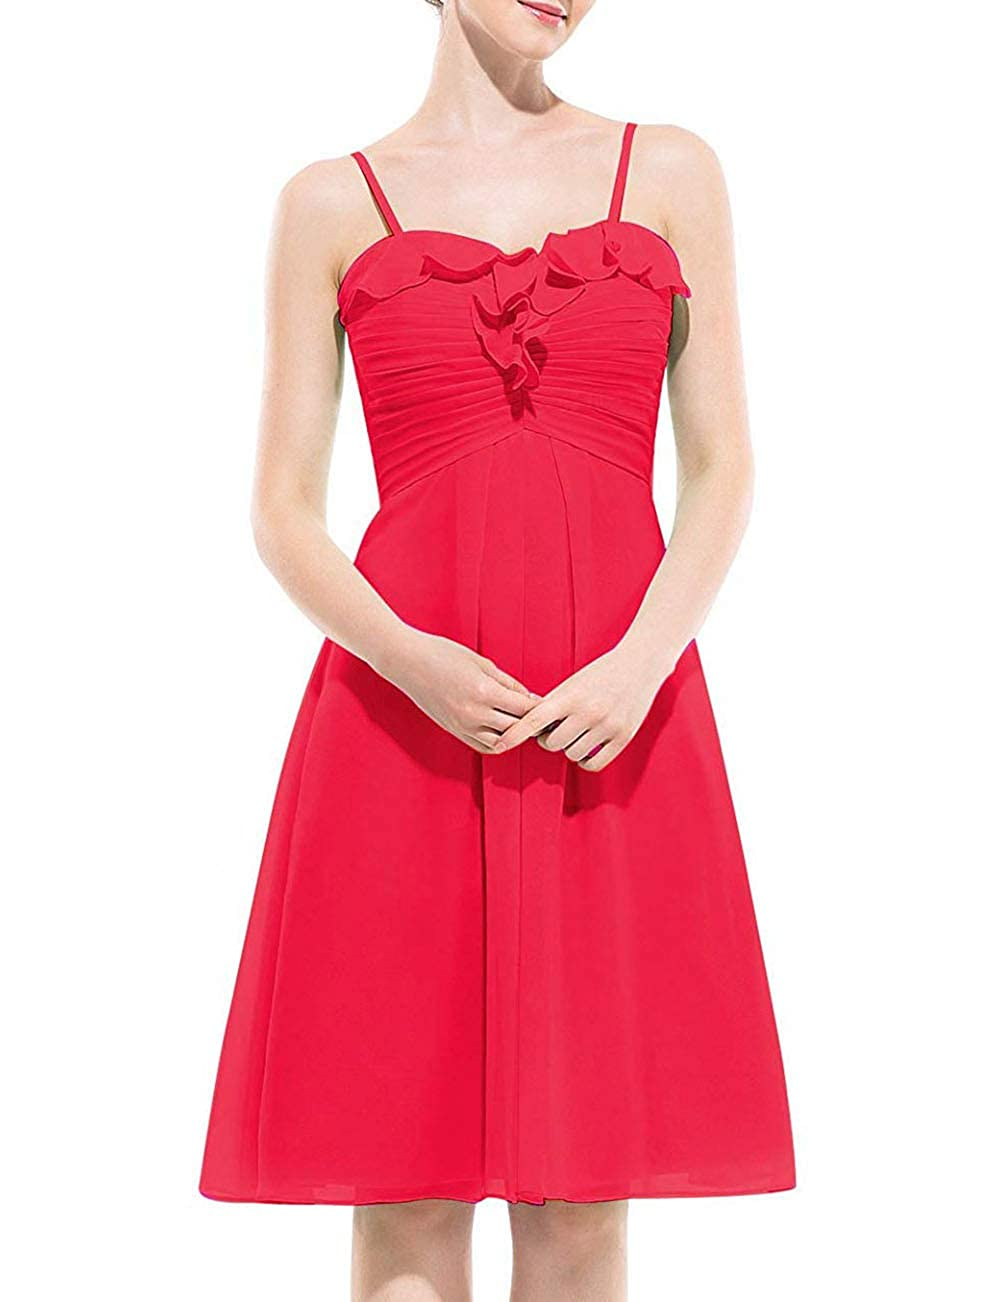 Hot Pink Uther Spaghetti Strap Bridesmaid Dress Short Homecoming Party Cocktail Dresses